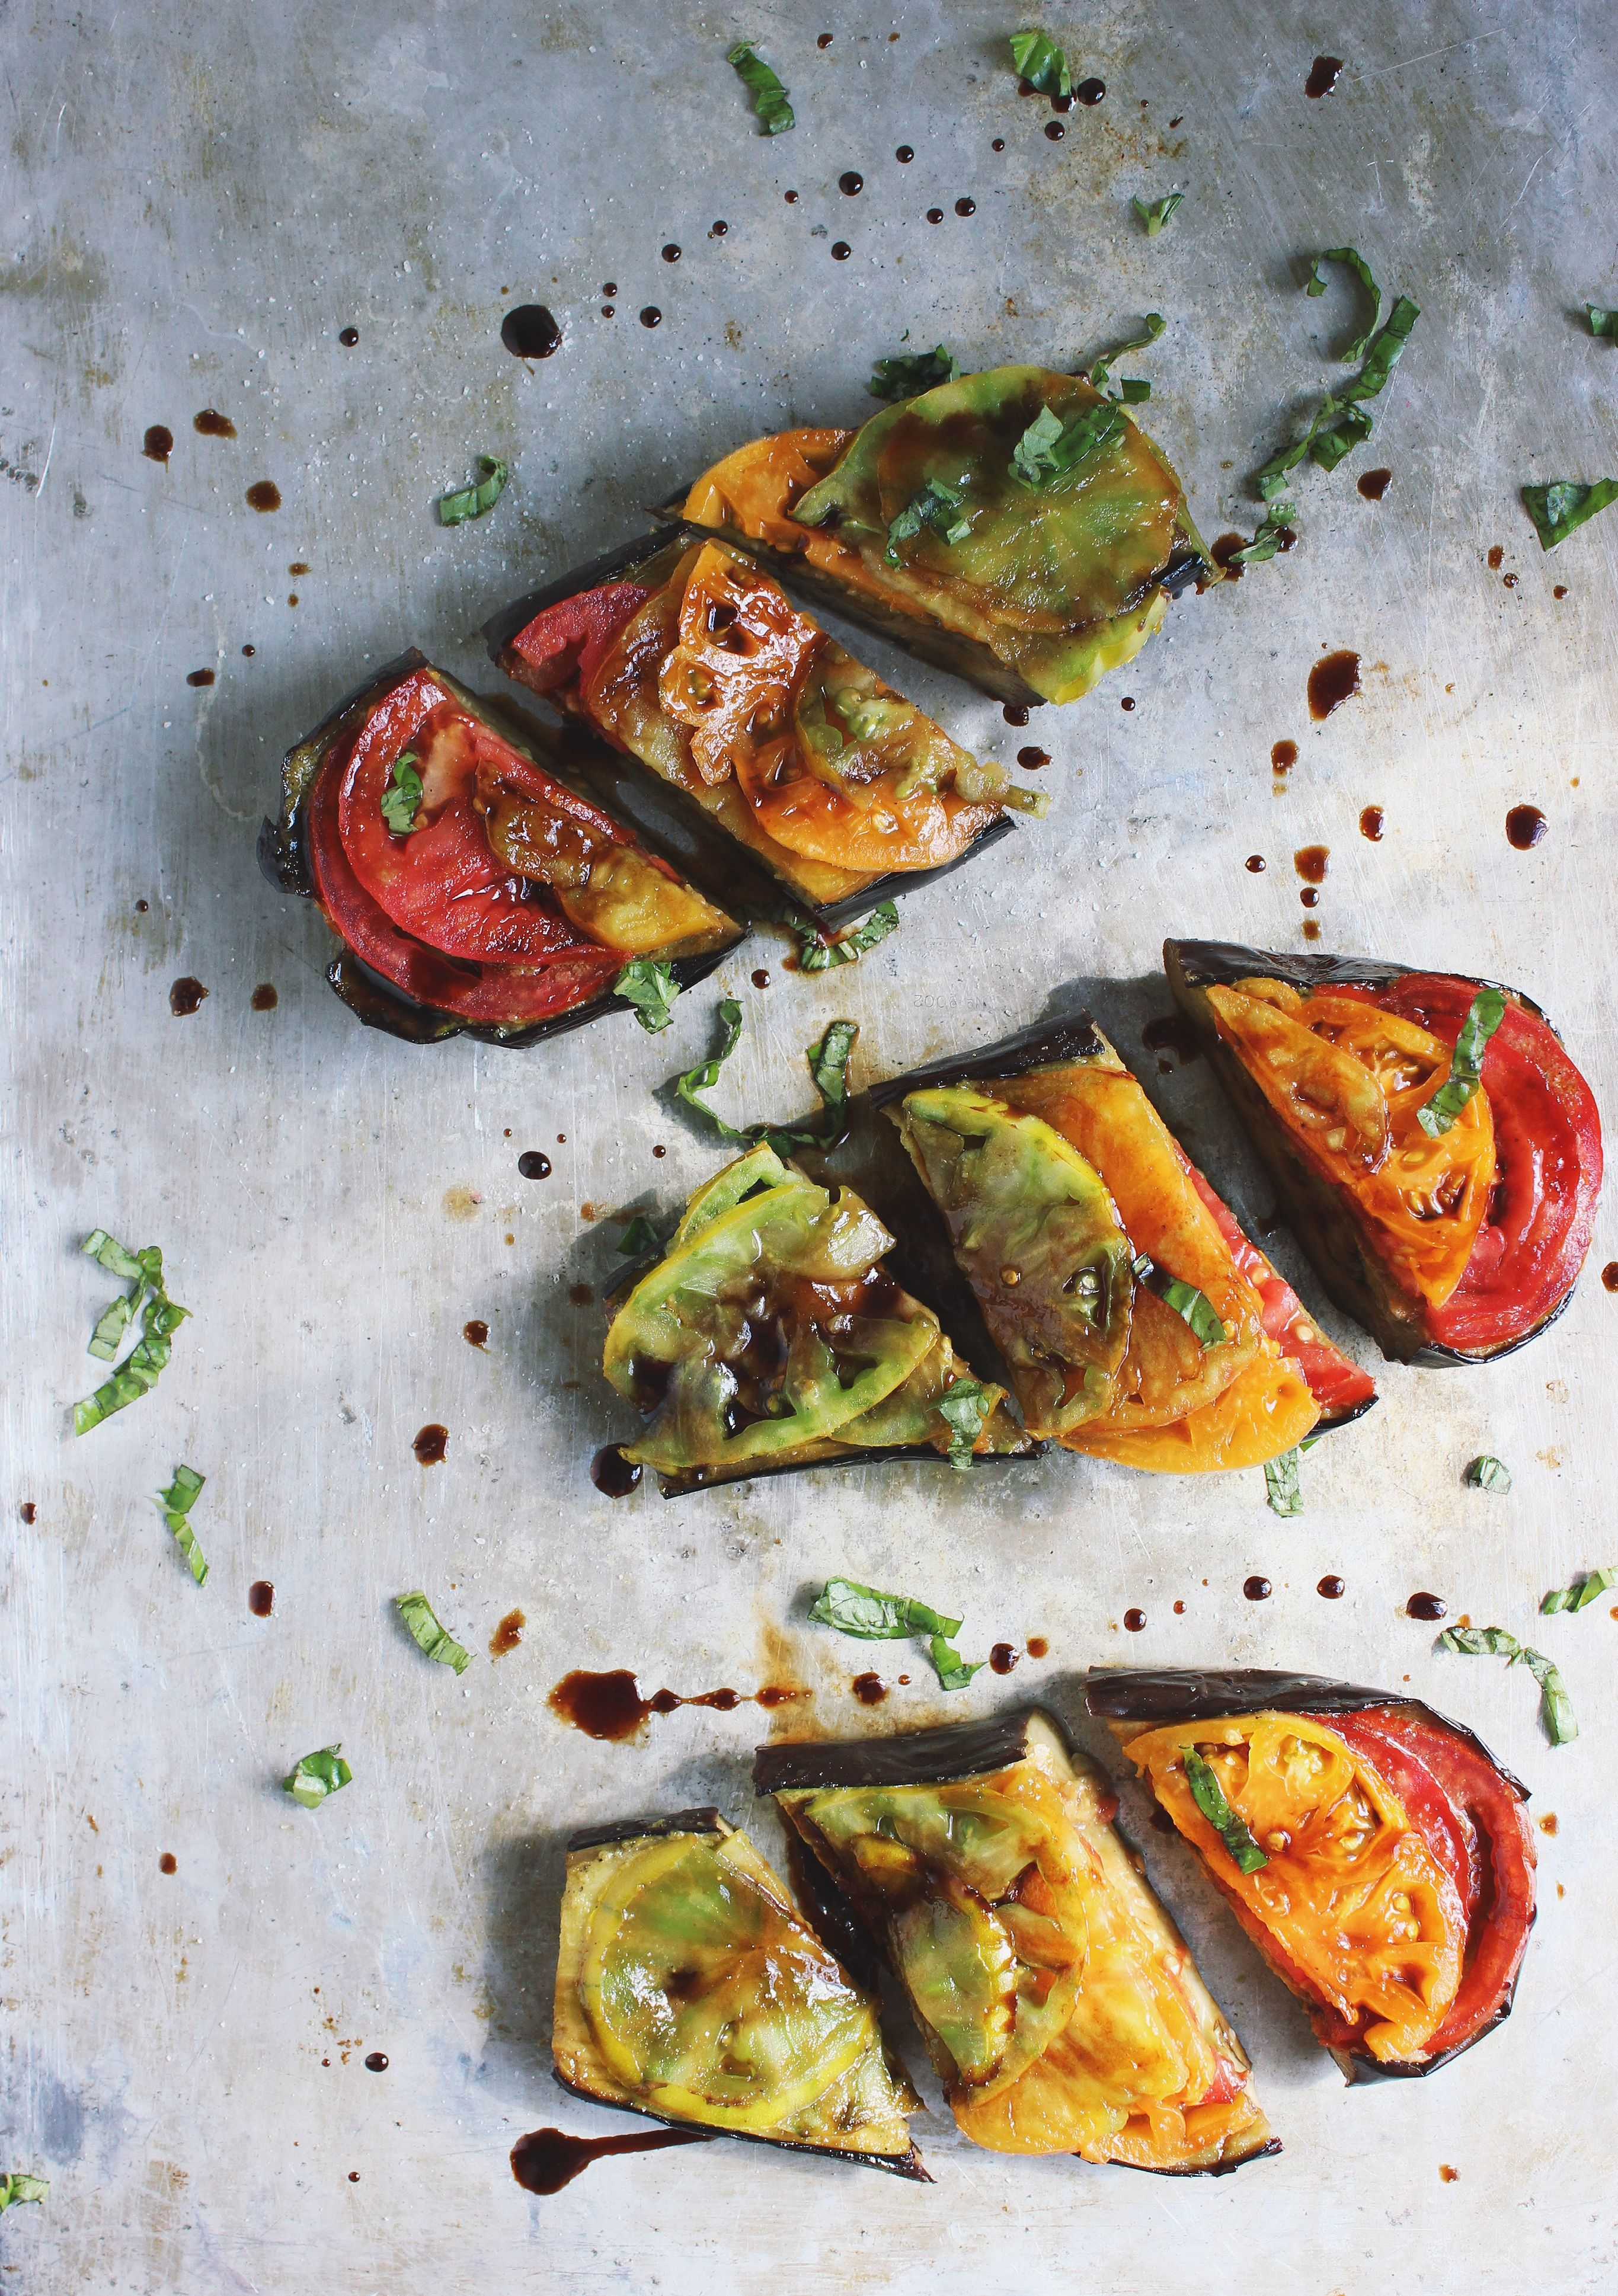 Basil Roasted Eggplant with Heirlooms + a Balsamic Drizzle